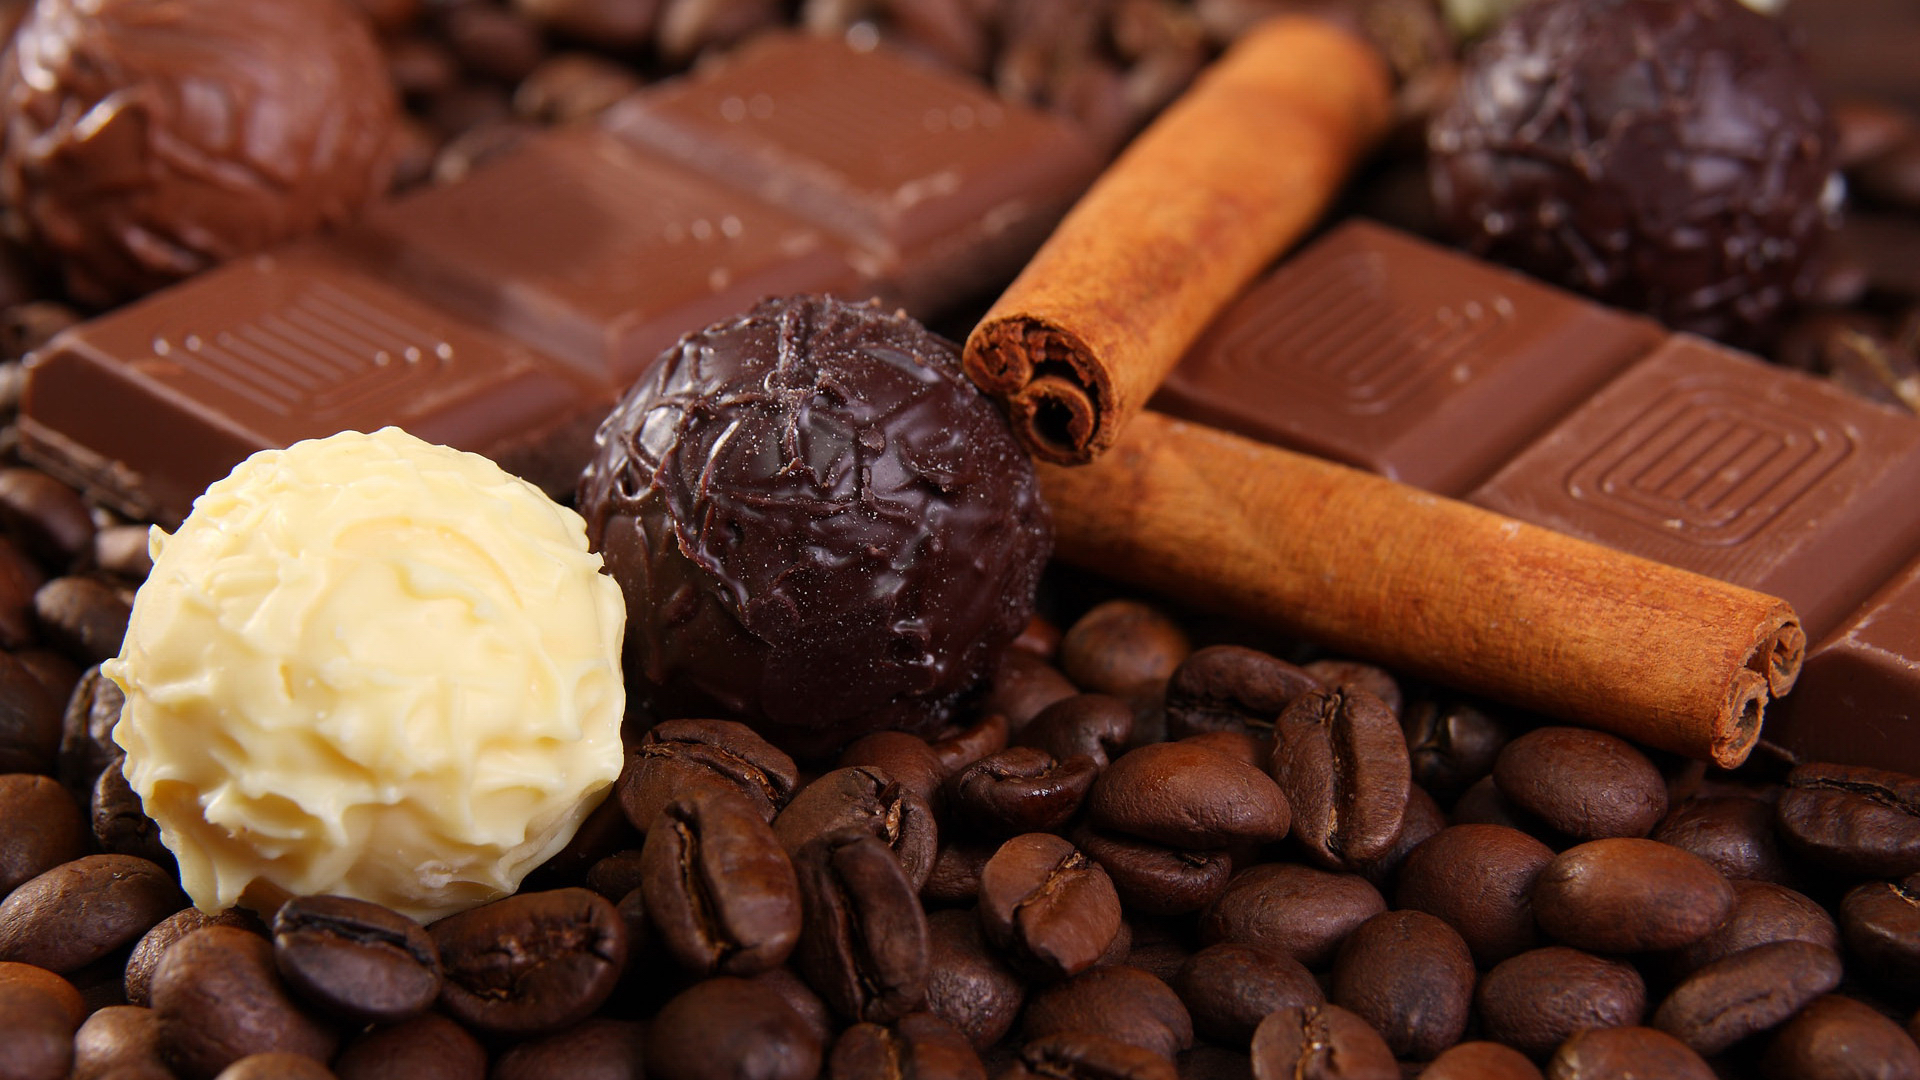 41374 download wallpaper Food, Background, Chocolate, Coffee, Cinnamon screensavers and pictures for free